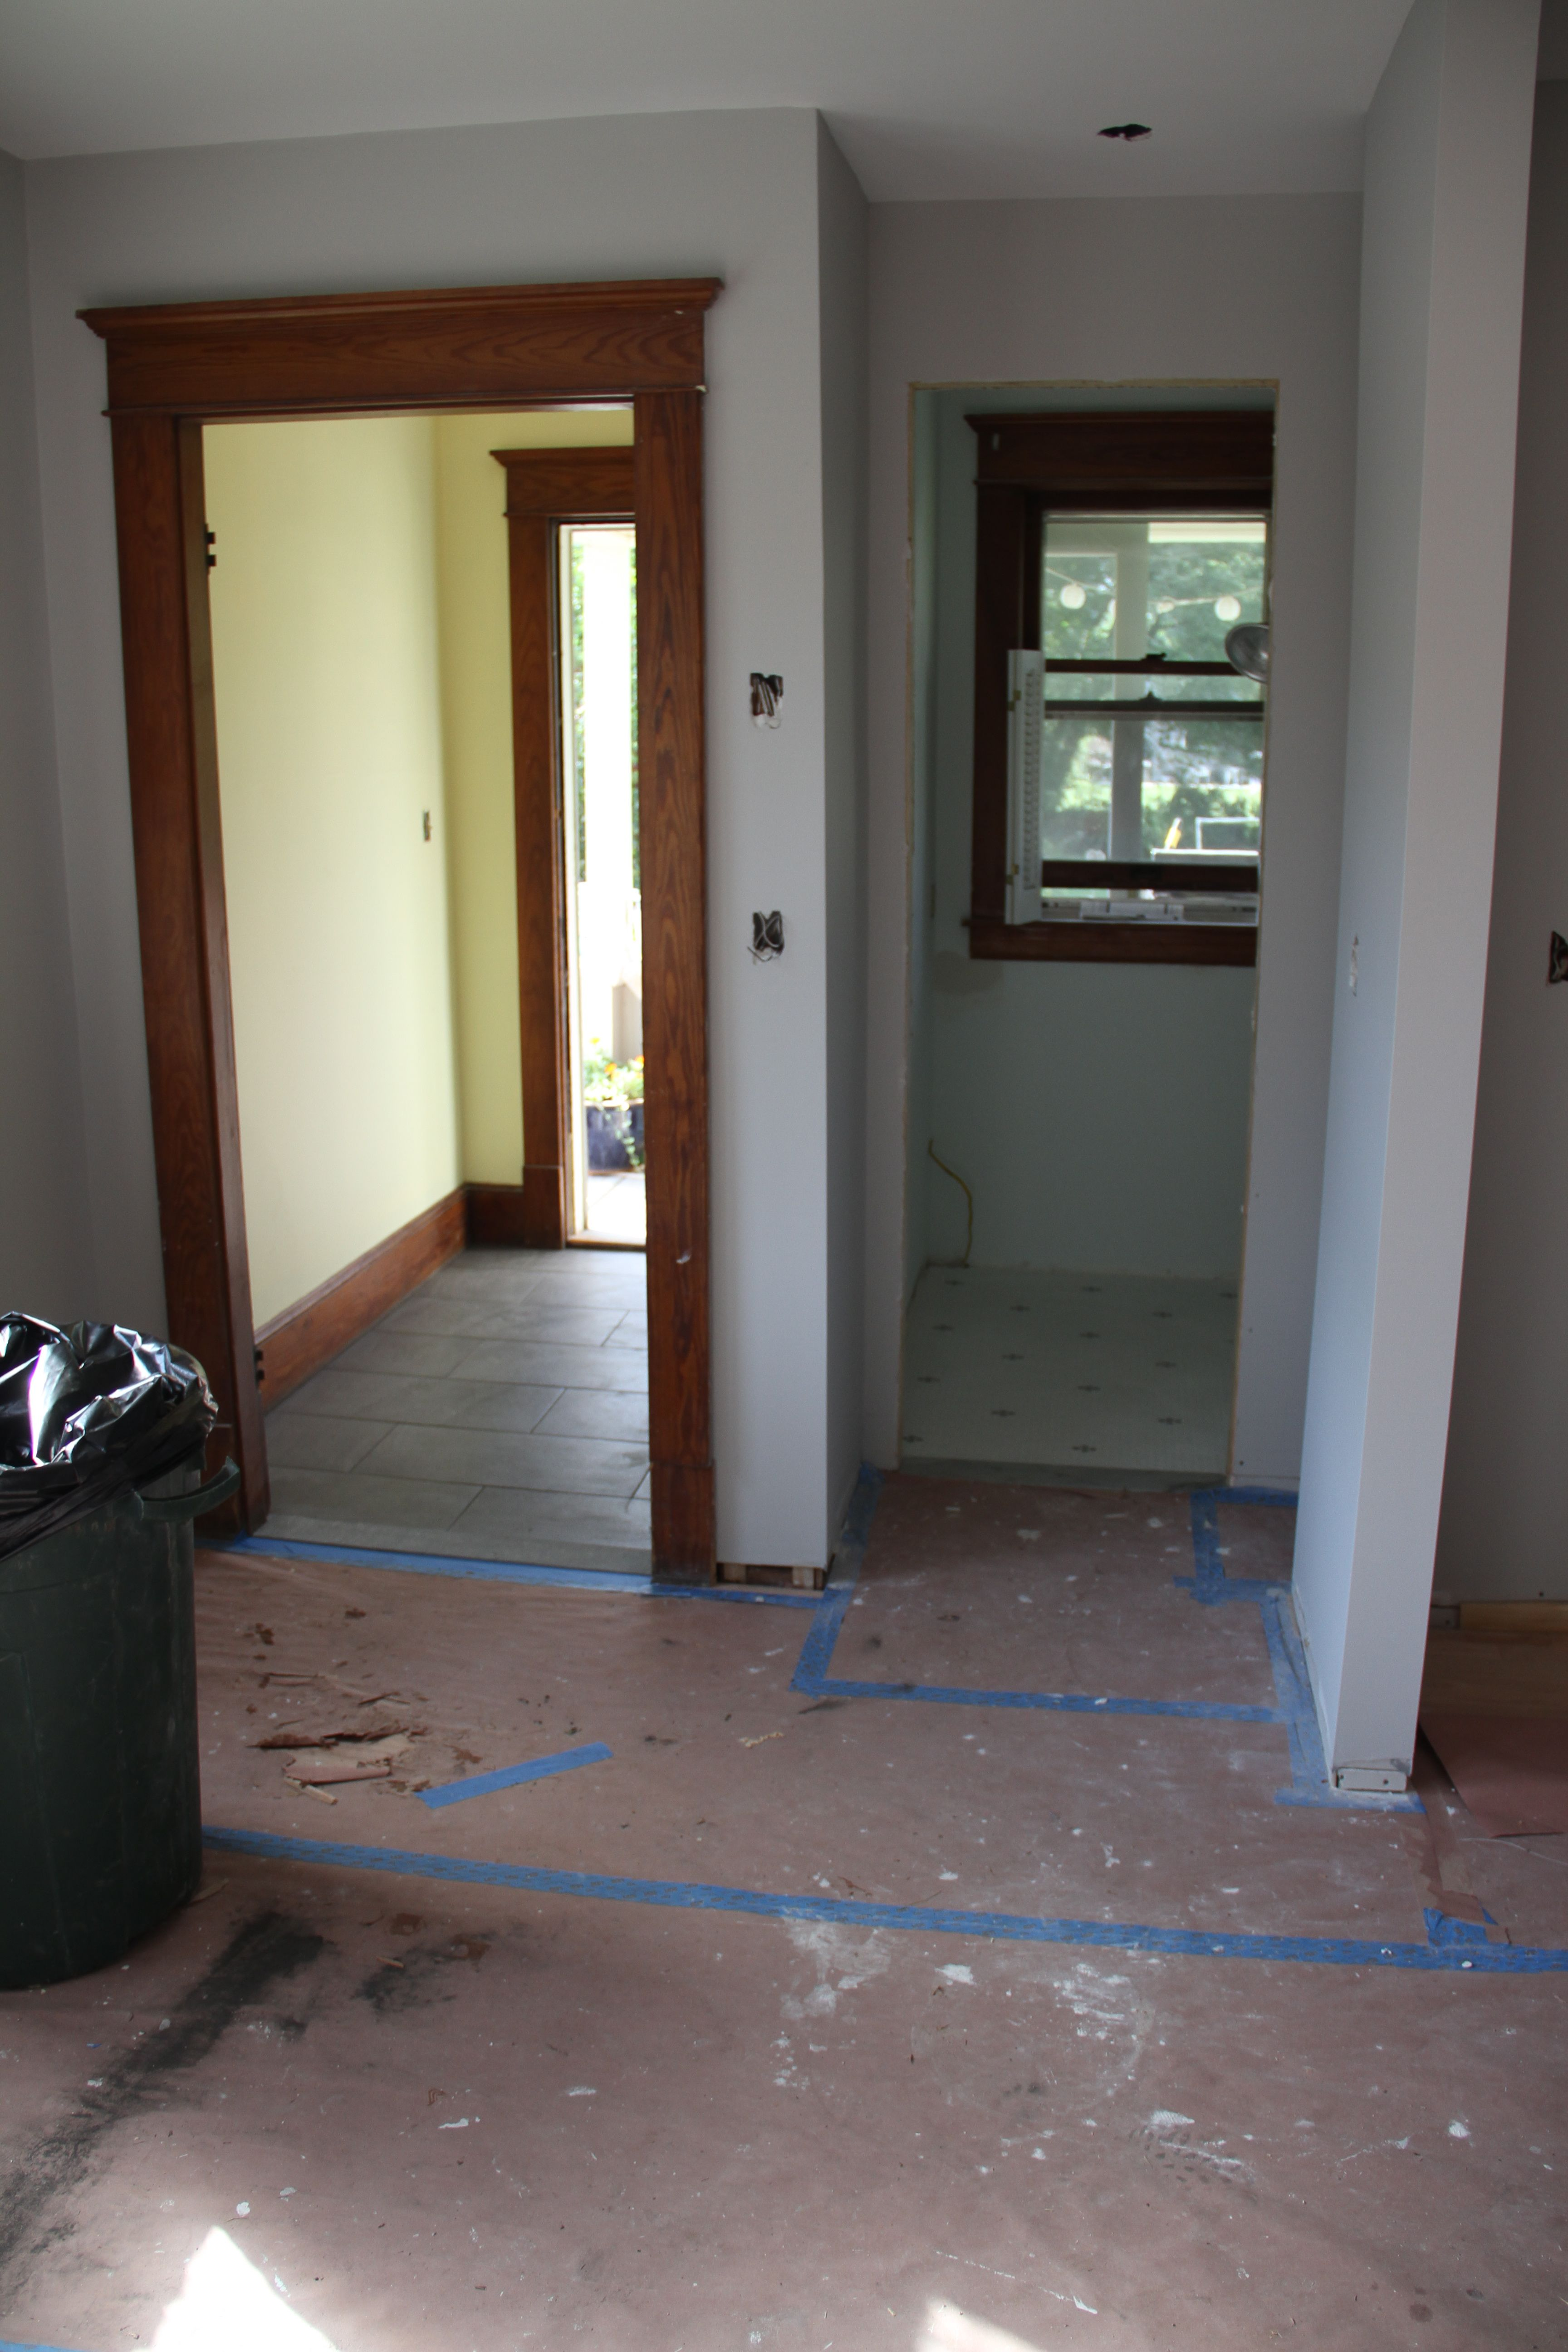 The two spaces, tiled and beautiful. A wee bit more painting and some floor protection and then it's on to wood flooring. Woo hoo!